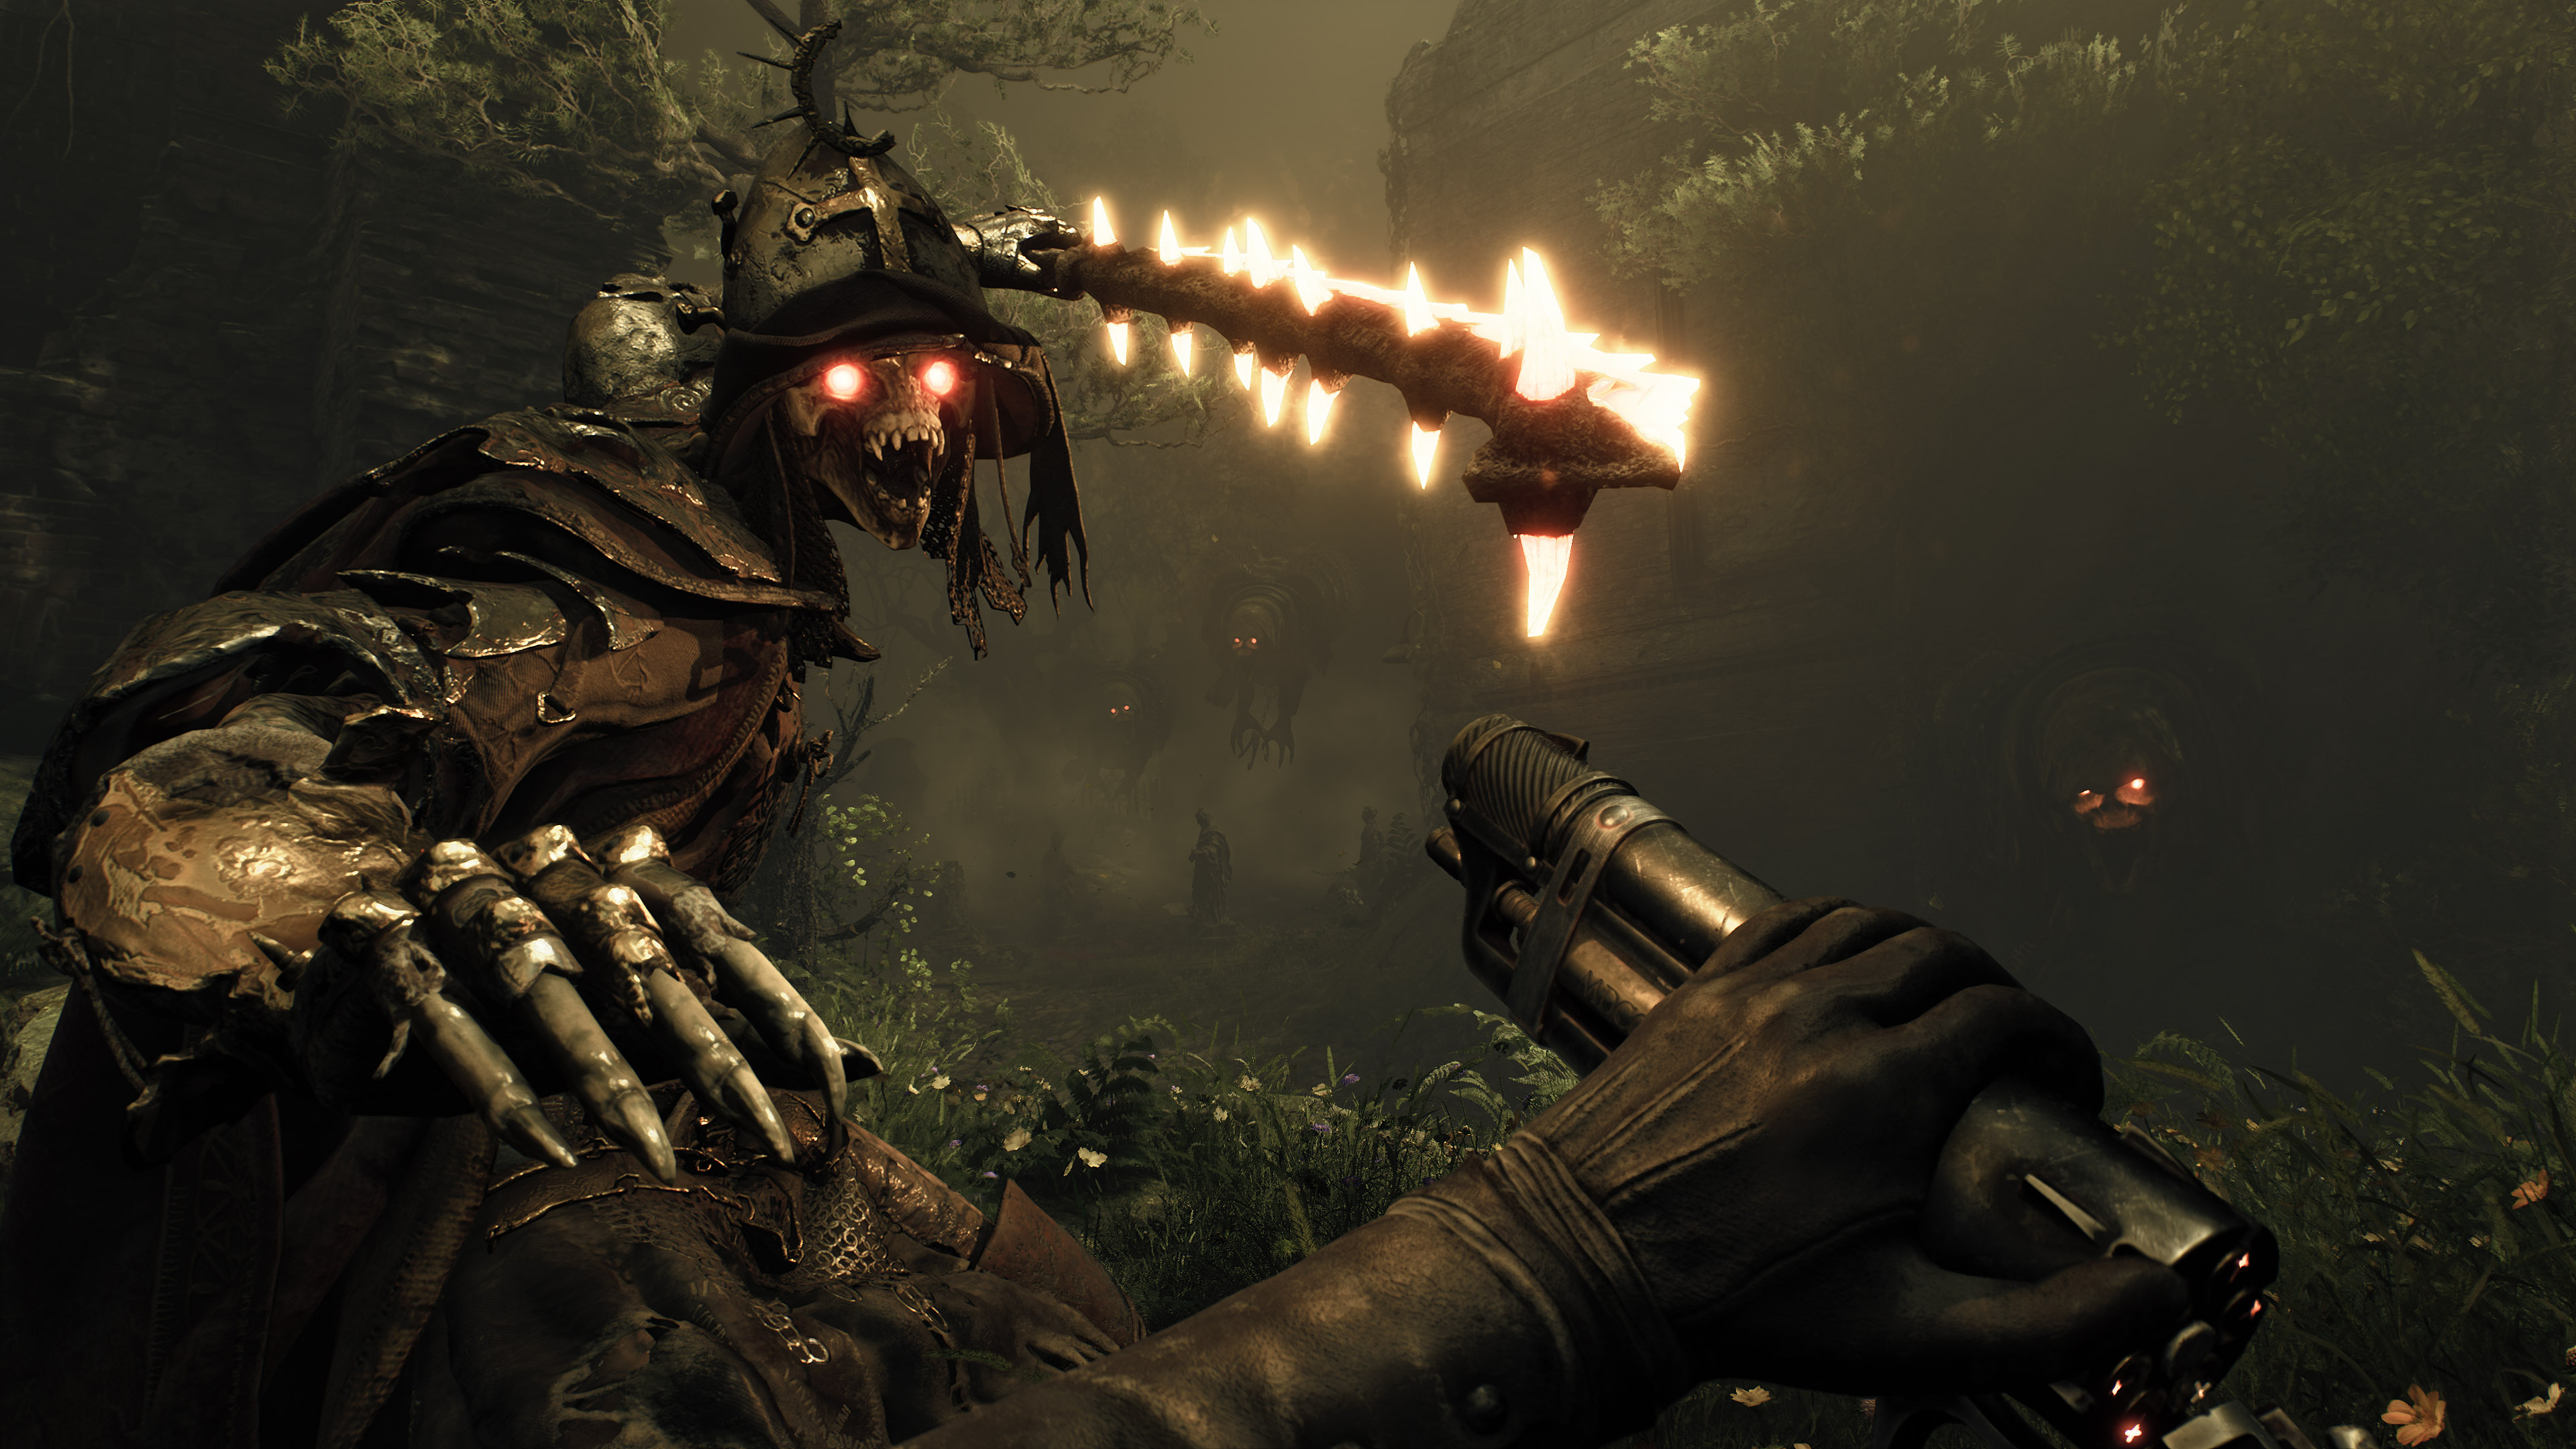 The Vanishing Of Ethan Carter devs release new info on Witchfire